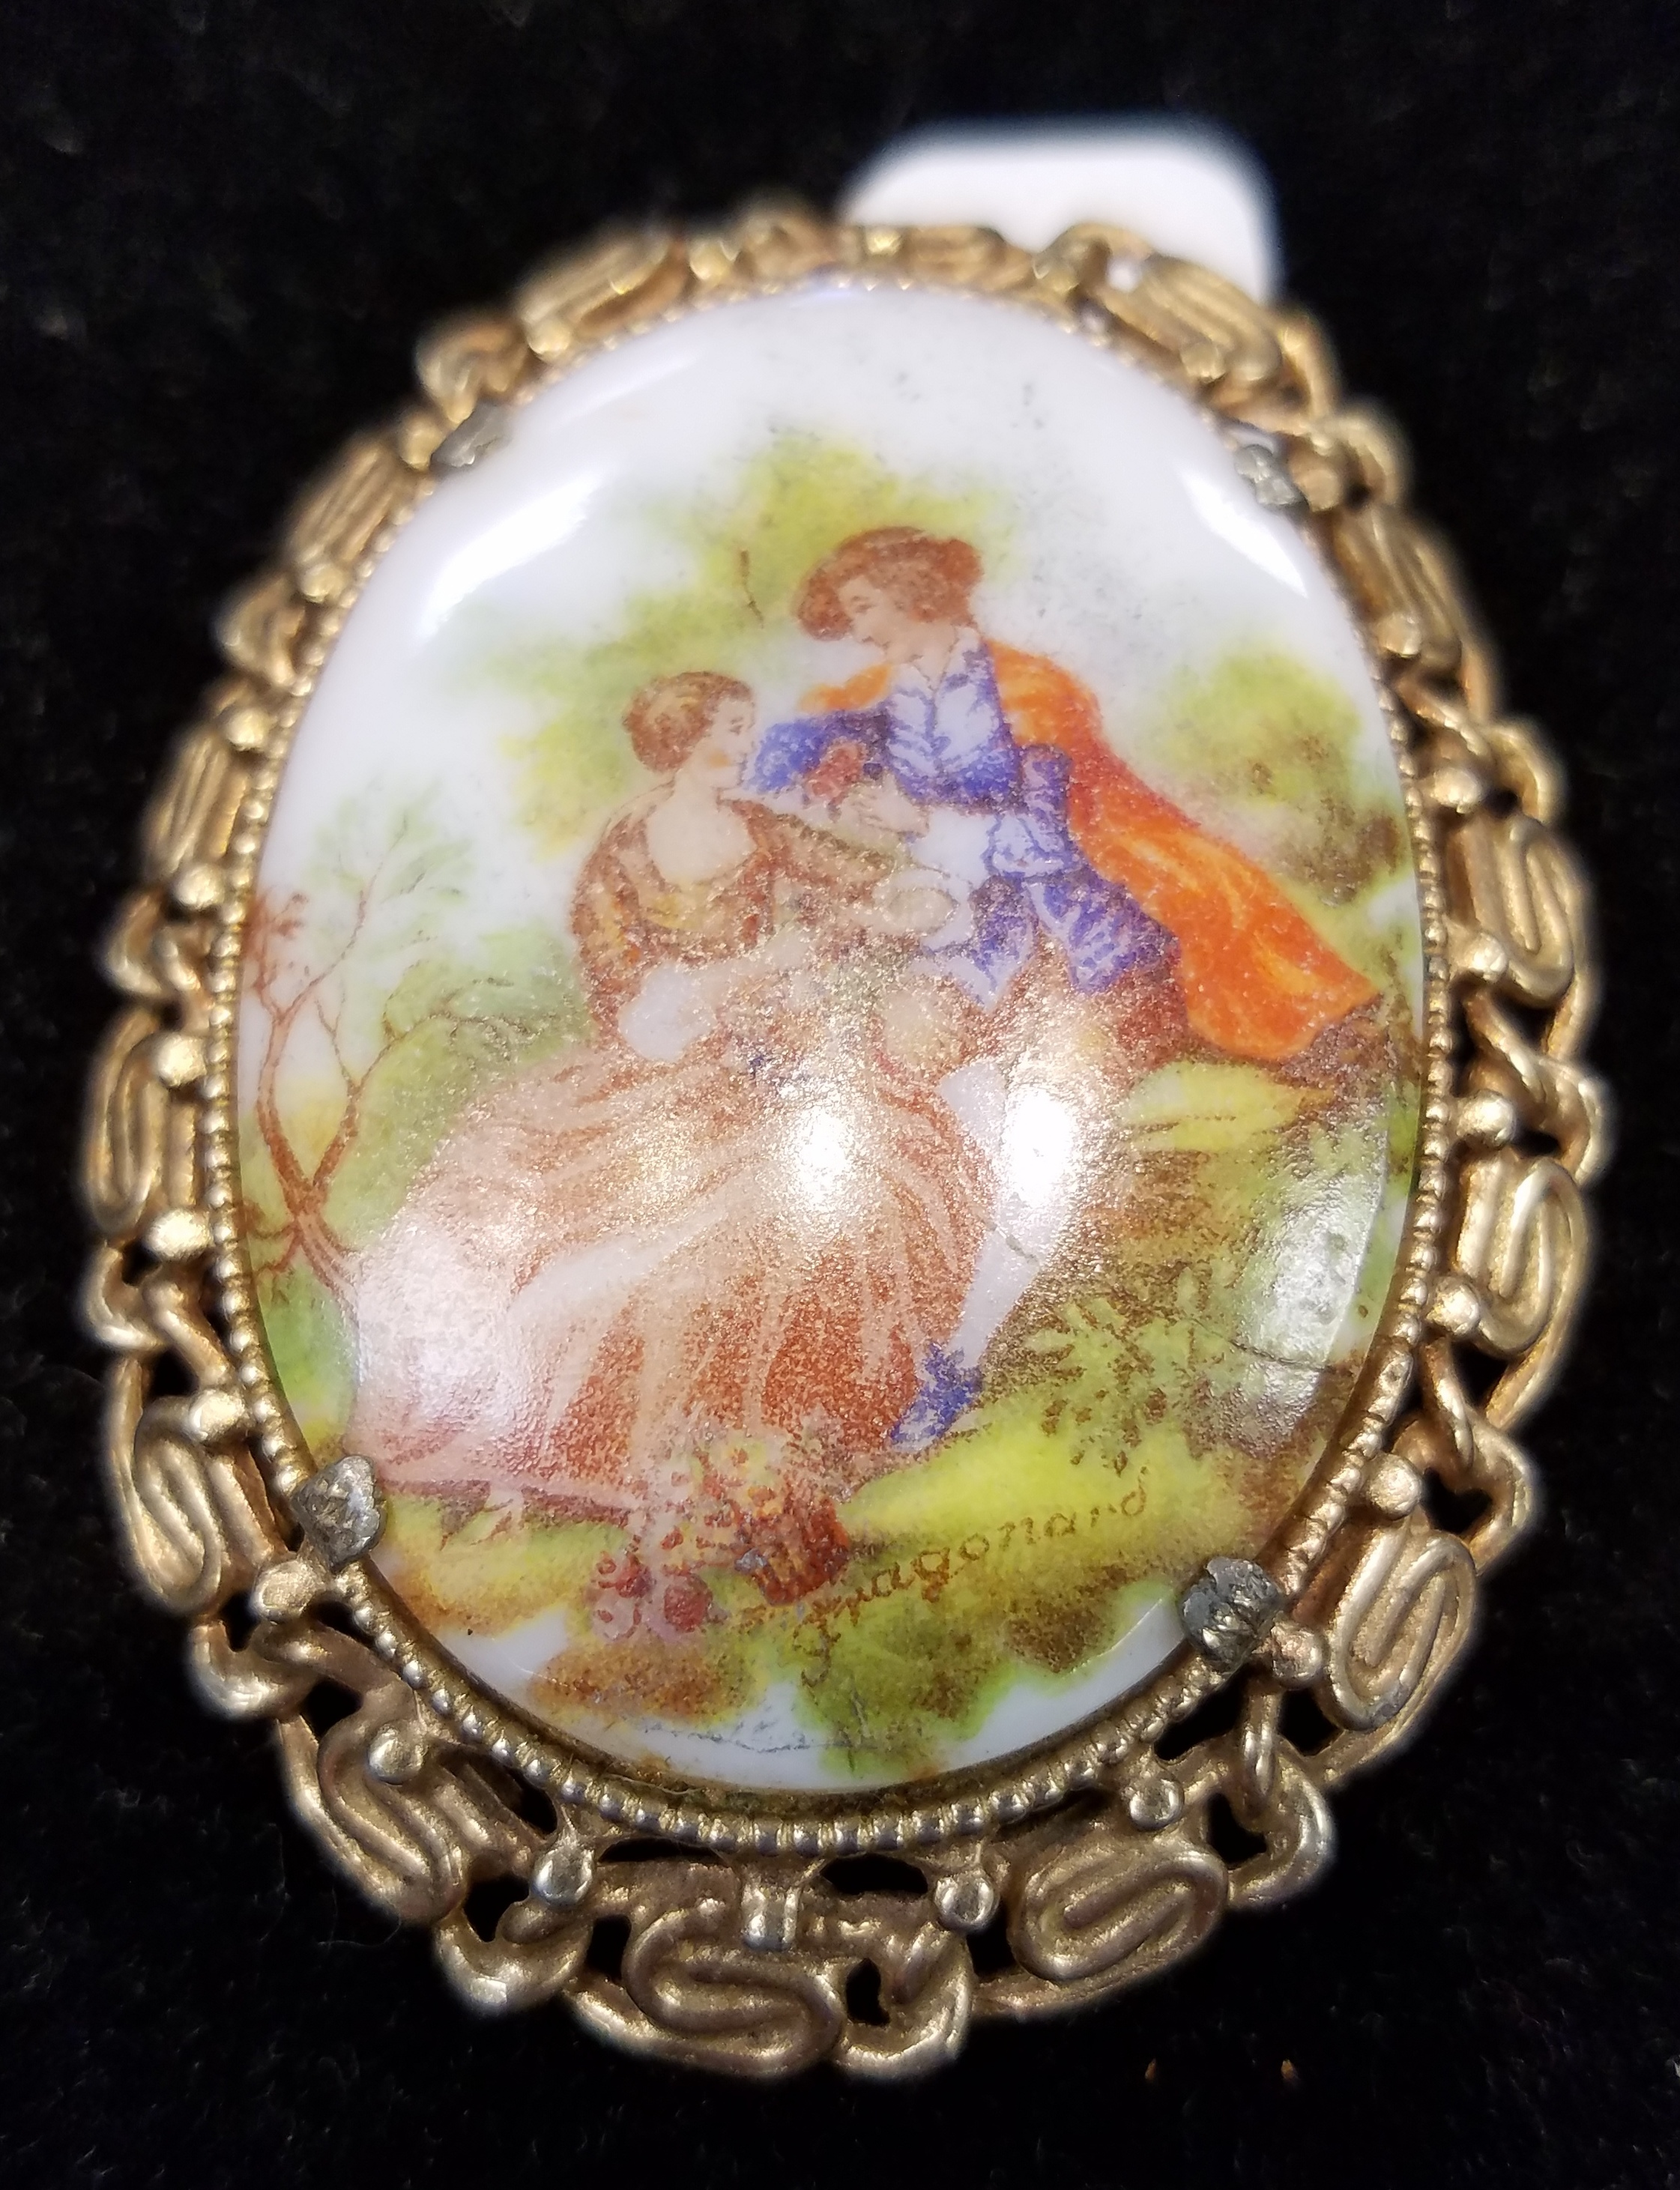 JEWELRY: GOLD PLATED - MAN AND WOMEN IN GARDEN - NANCY SCOTT PIN